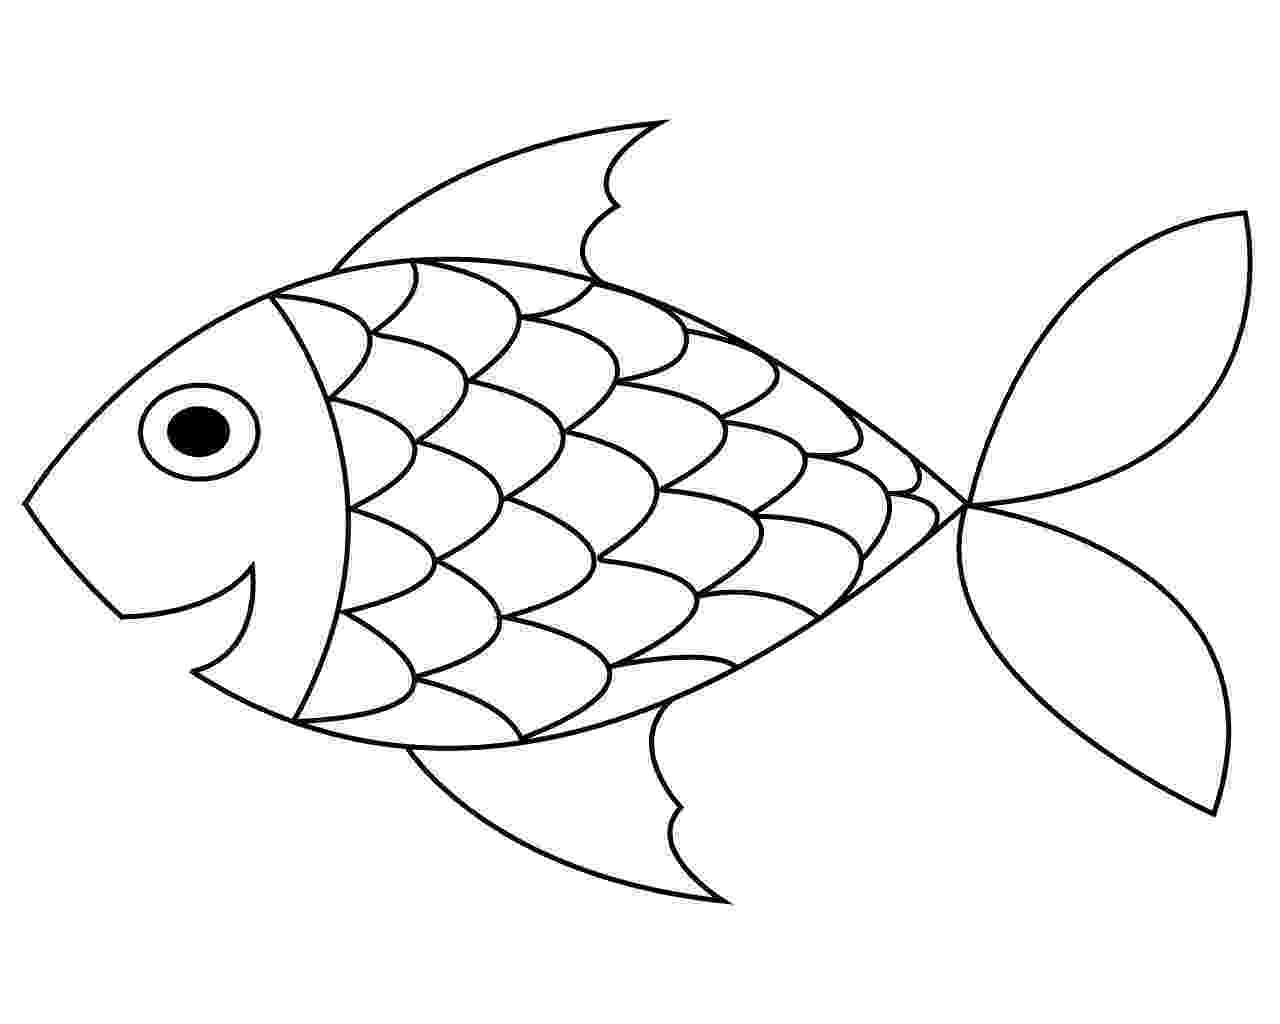 fish picture to color free printable fish coloring pages for your lovely toddlers fish picture color to